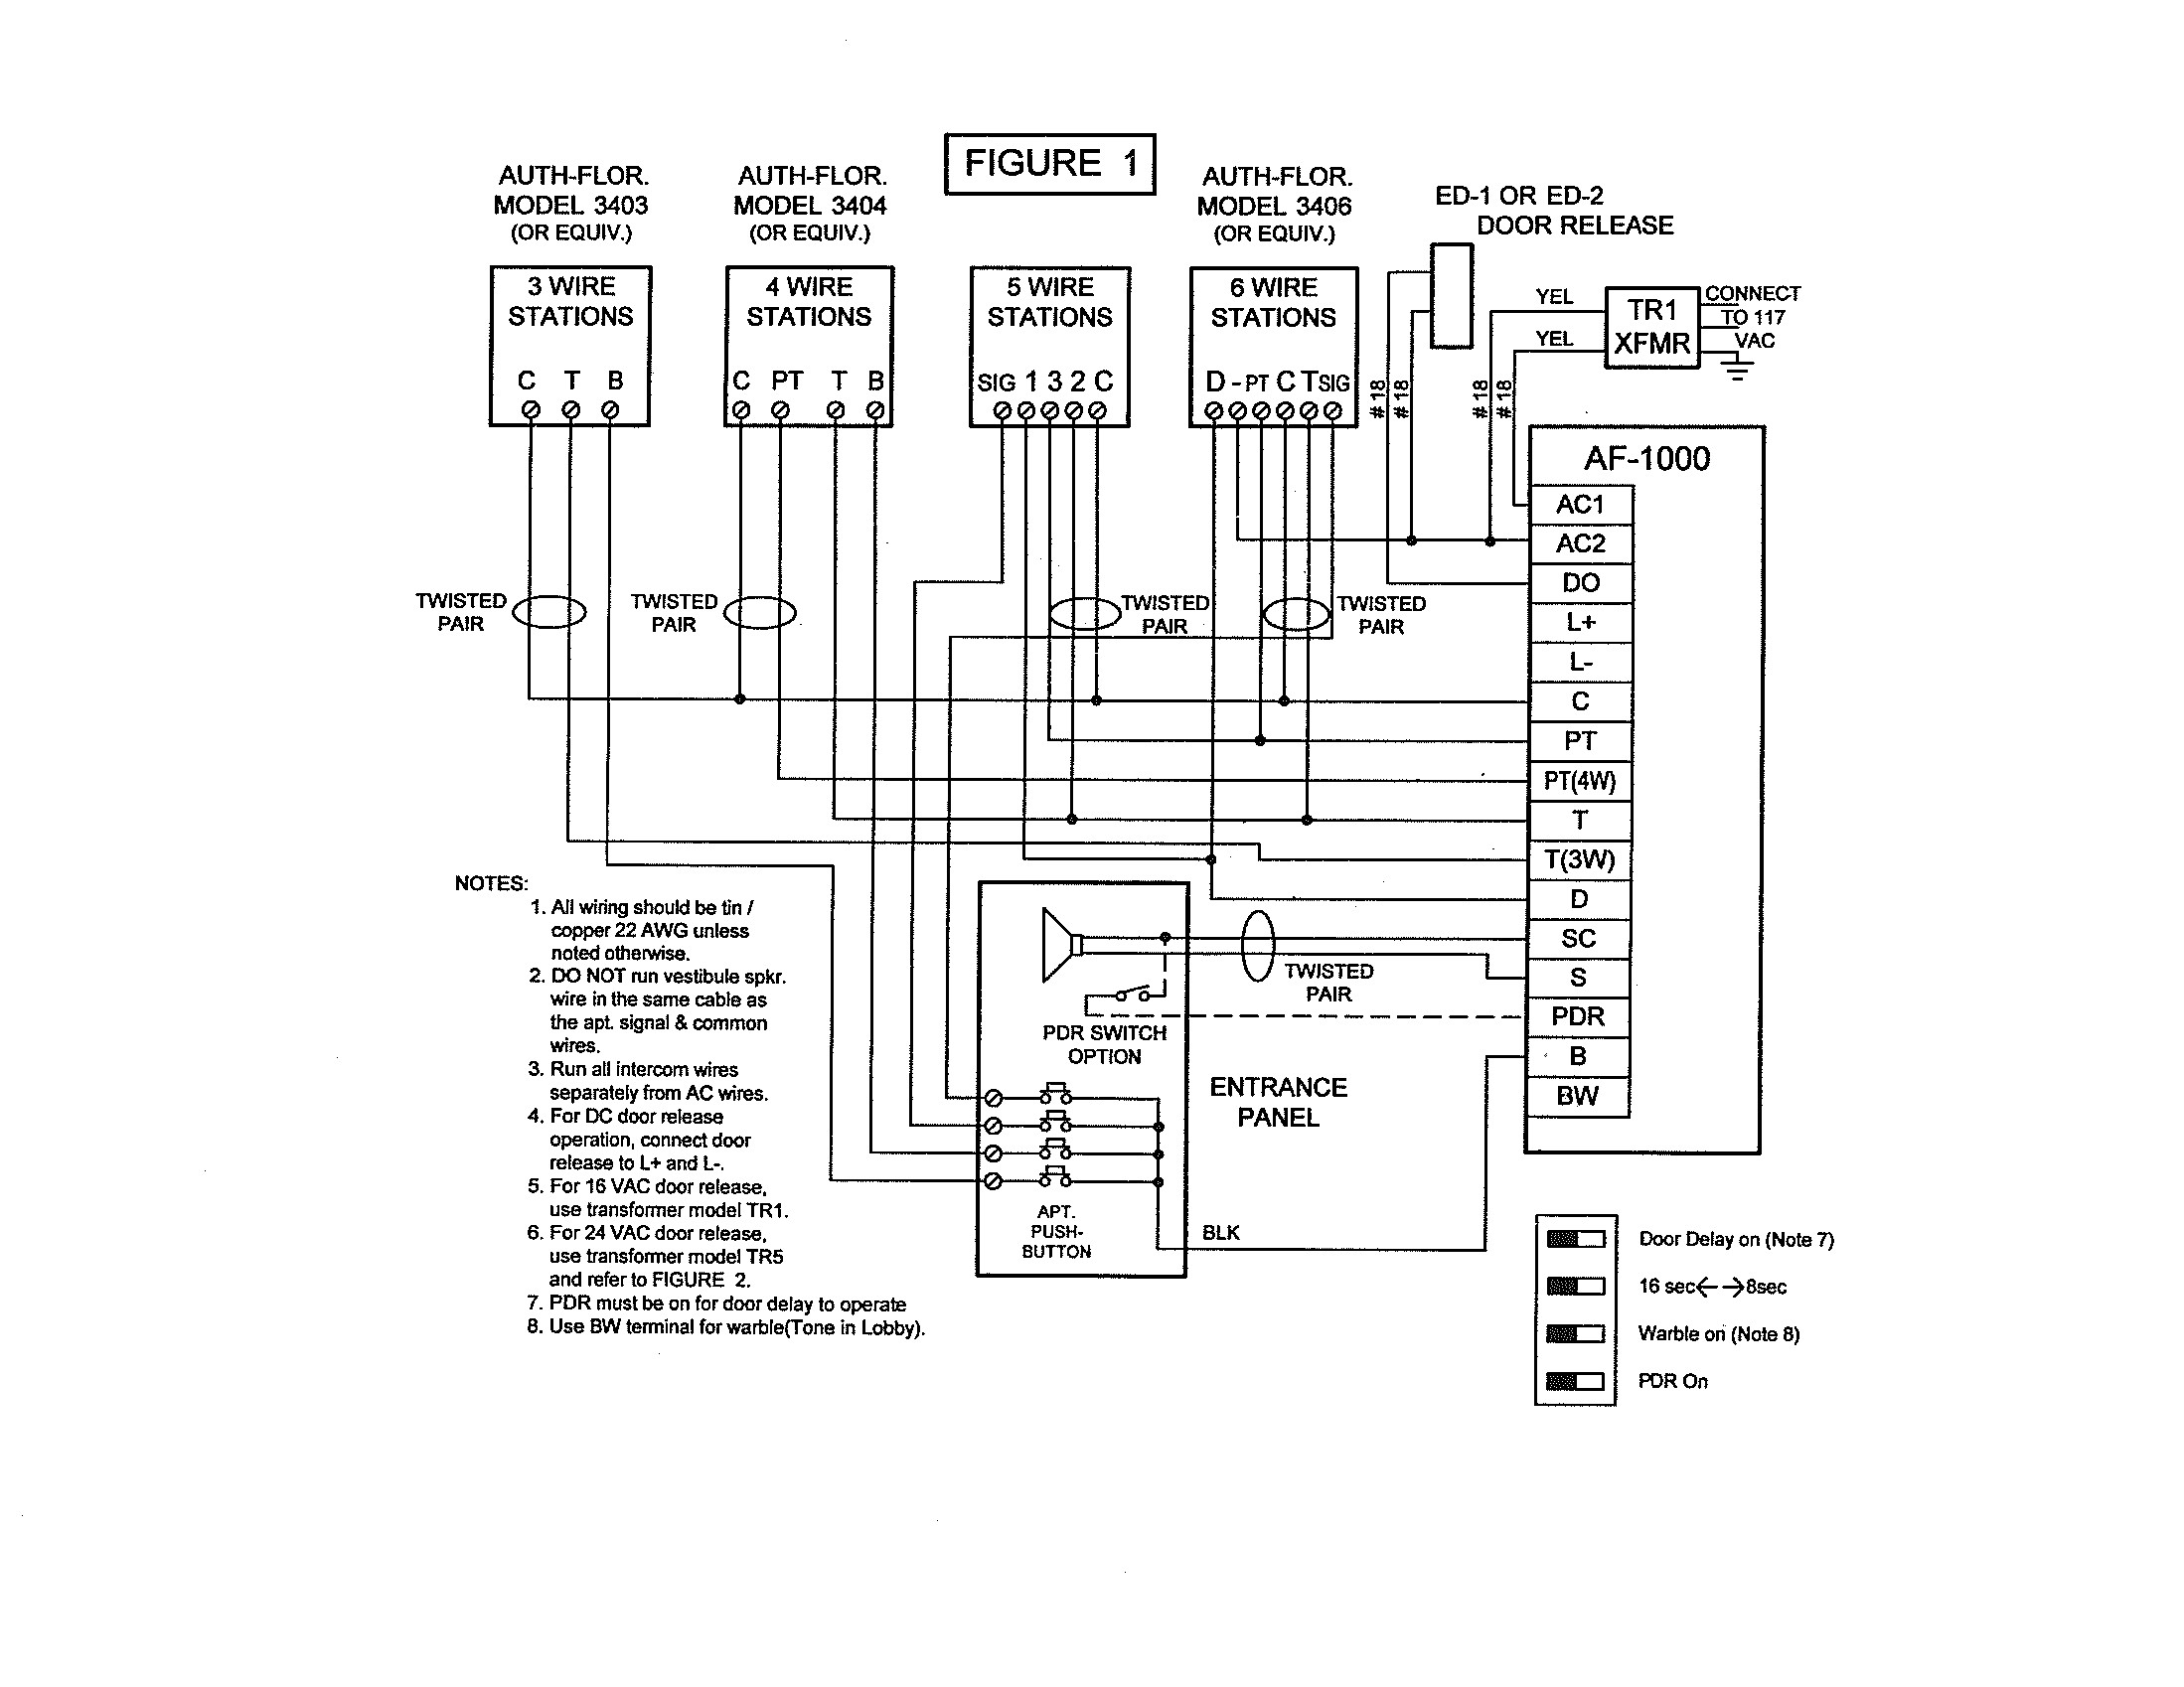 Intercom Speaker Wiring Diagrams on Abs Brake System Problems